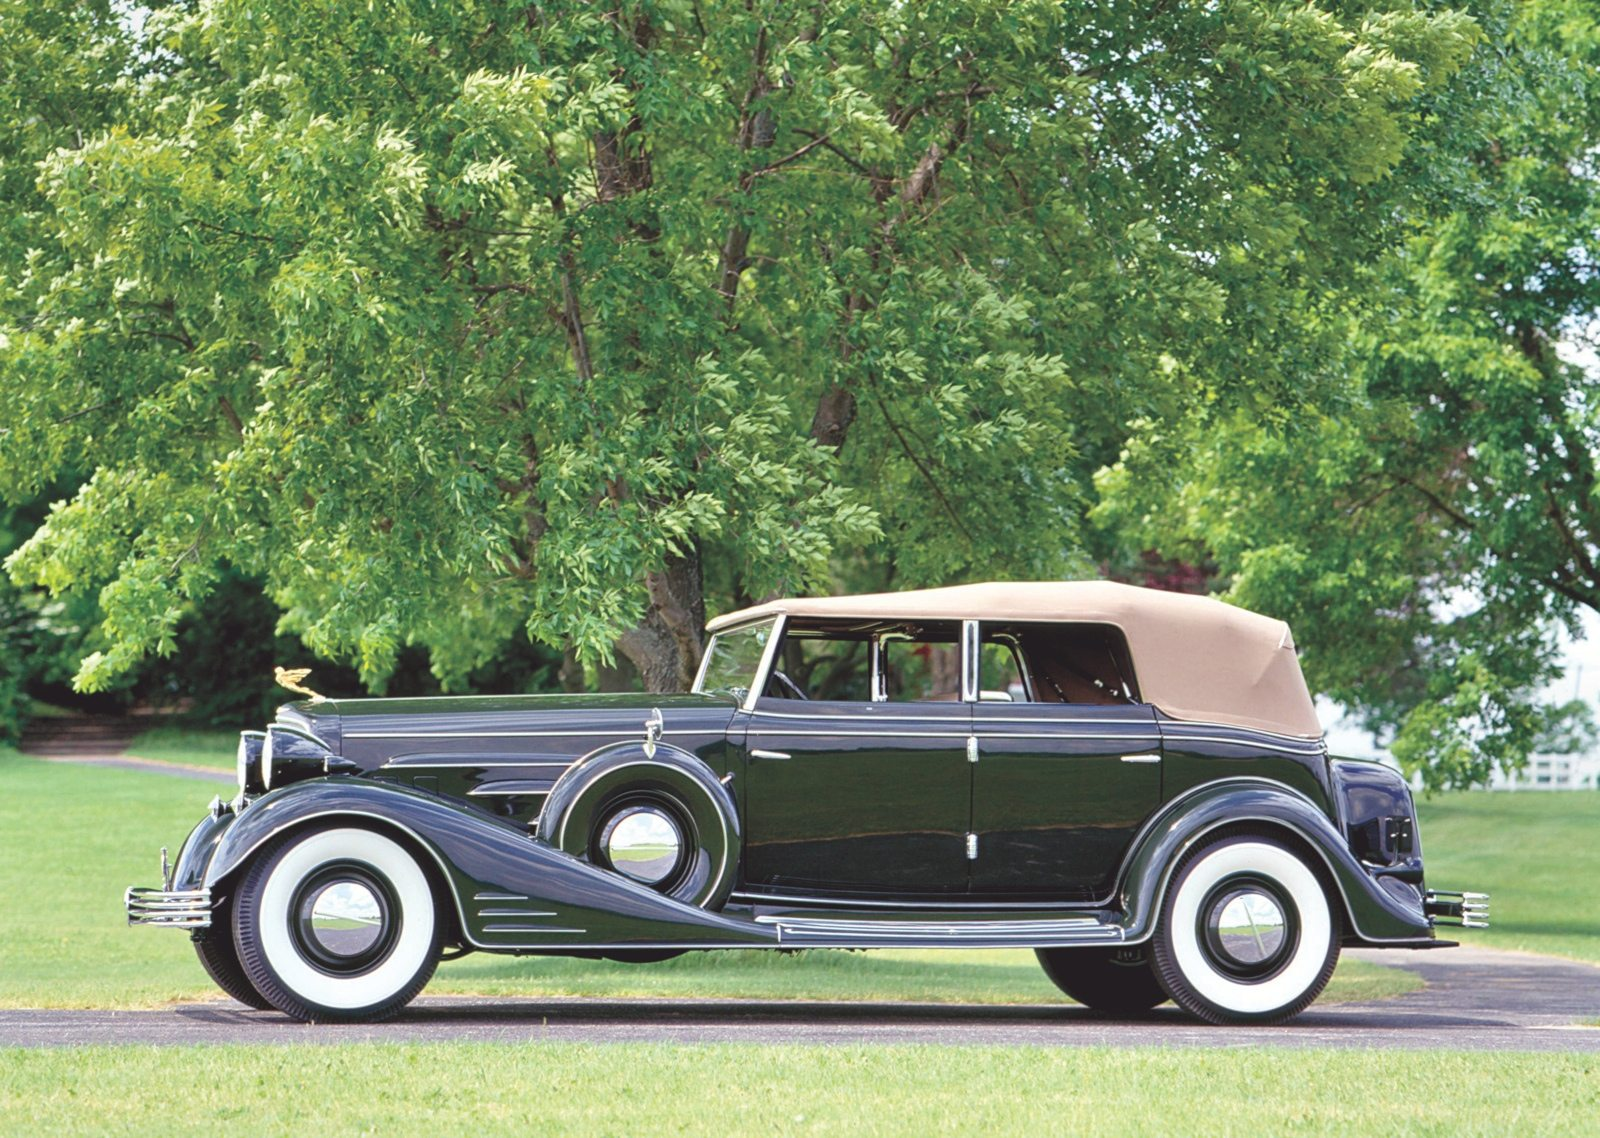 hight resolution of not to be outdone by its contemporaries who were copying the 1927 1932 look of cadillac in 1933 earl and his design staff raised the bar with handsome